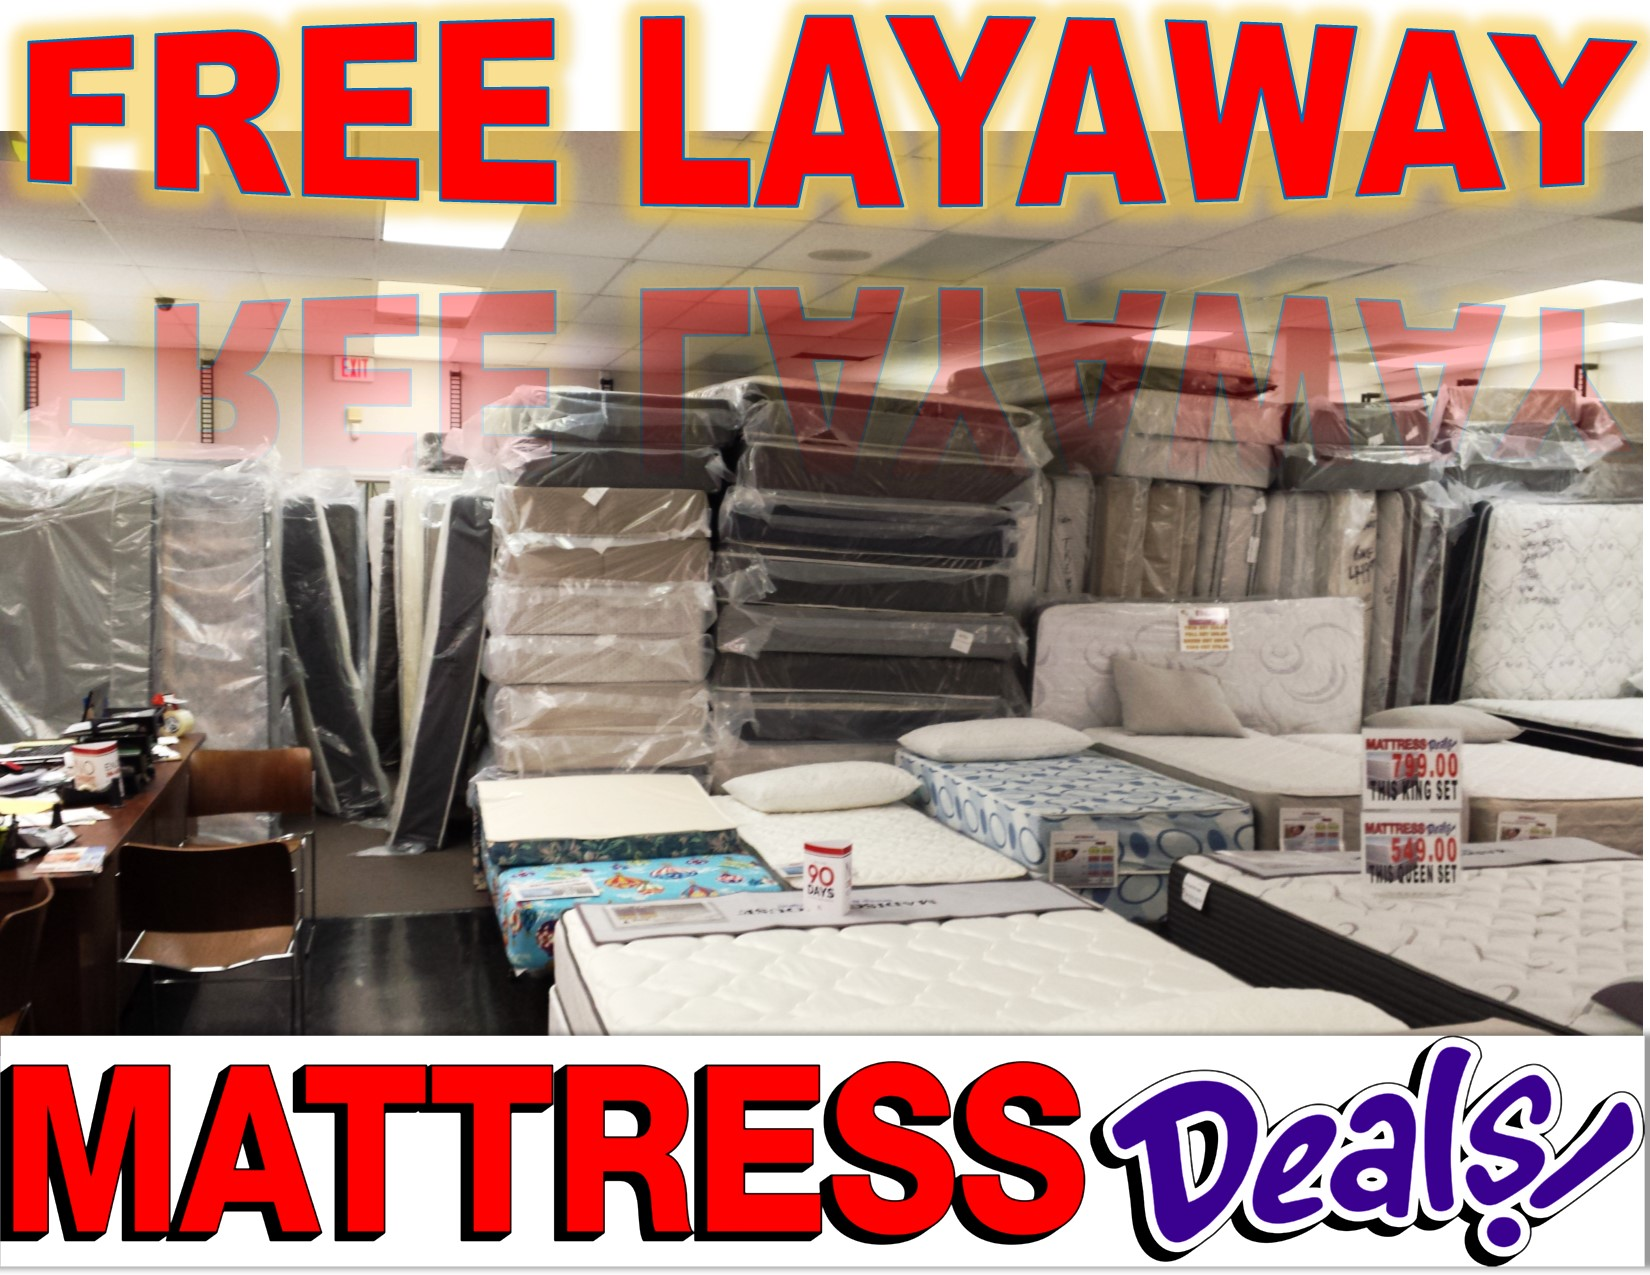 Mattress Deals image 88